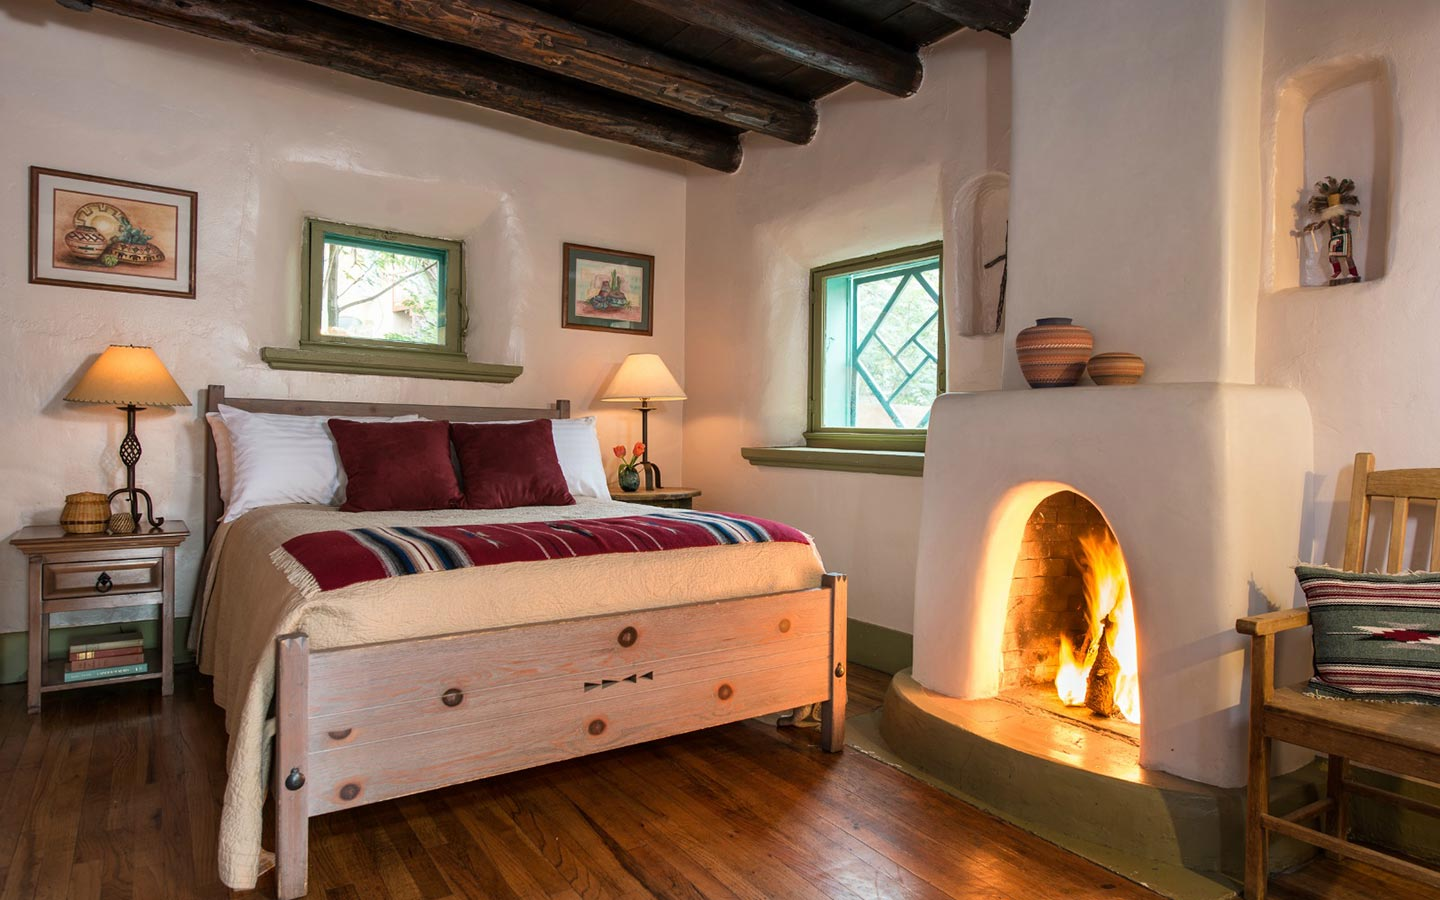 Bed And Breakfast In Santa Fe Nm Top Rated B Amp B